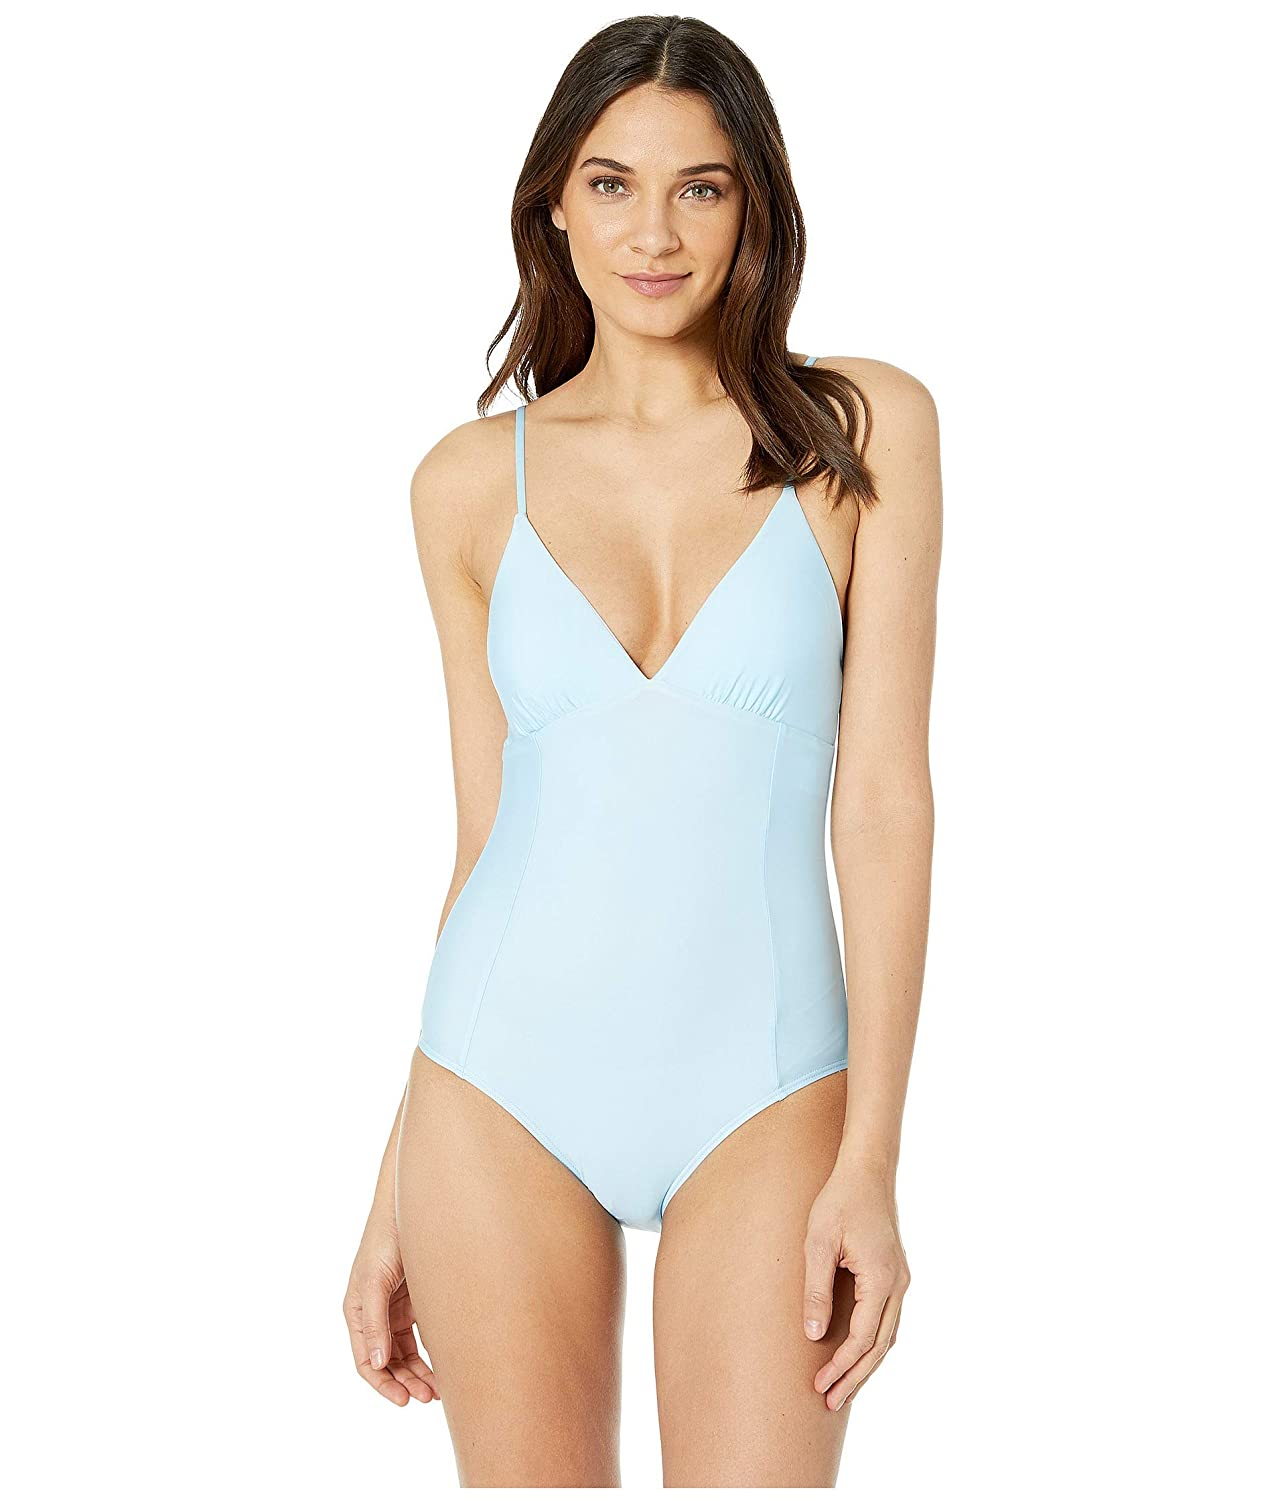 Splendid Womens Solid Removable Soft Cup One-Piece Swimsuit